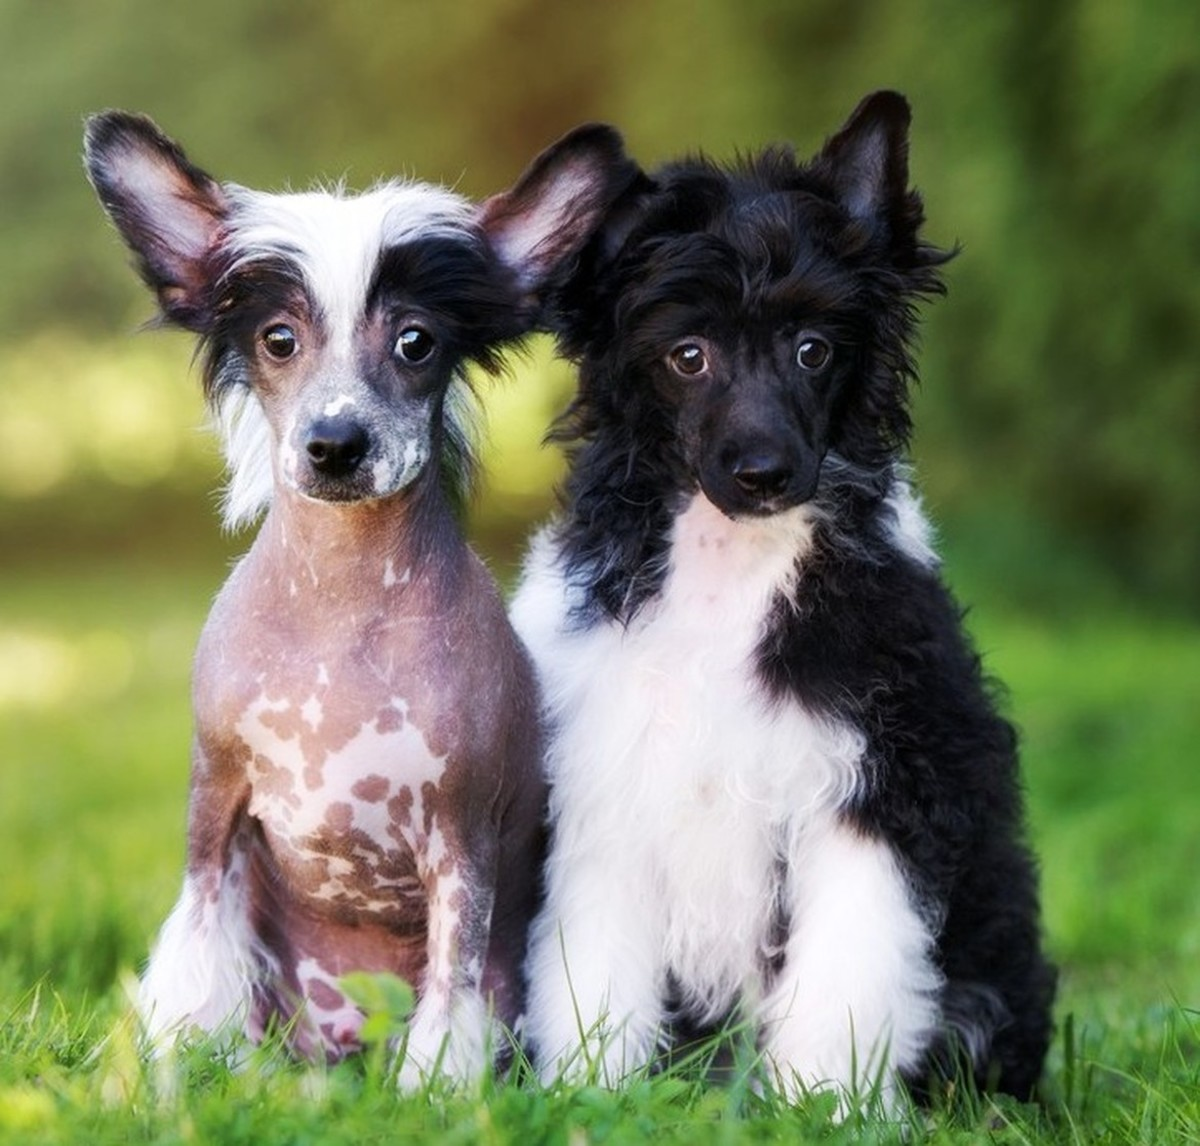 A hairless and powderpuff Chinese Crested require very different grooming techniques.